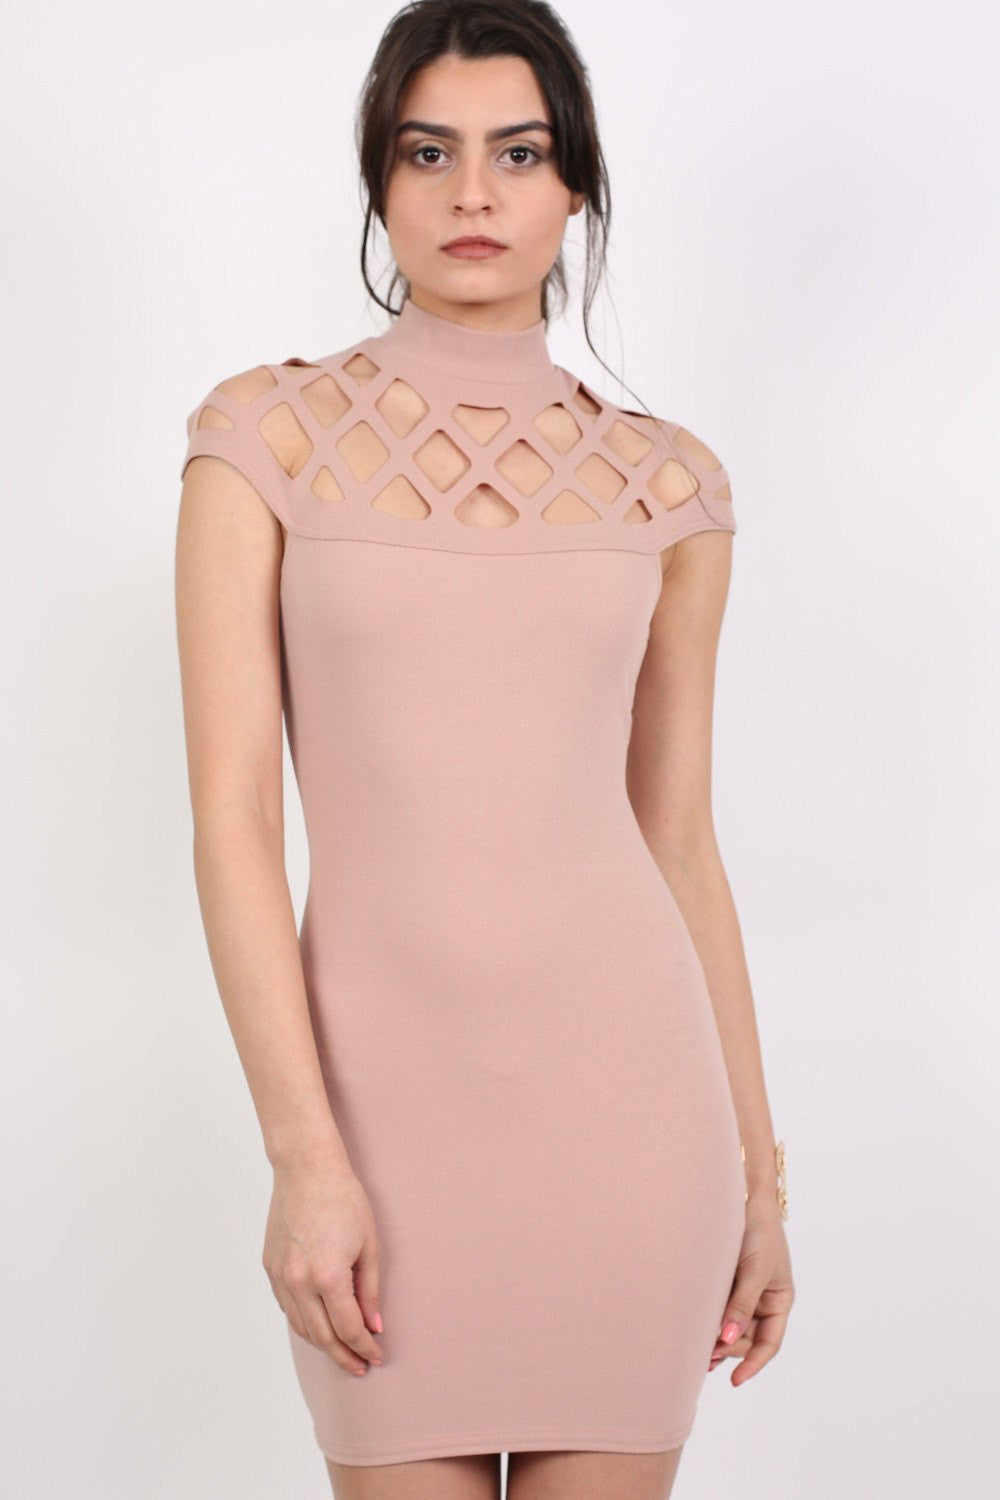 Caged Detail Bodycon Mini Dress in Rose Pink MODEL FRONT